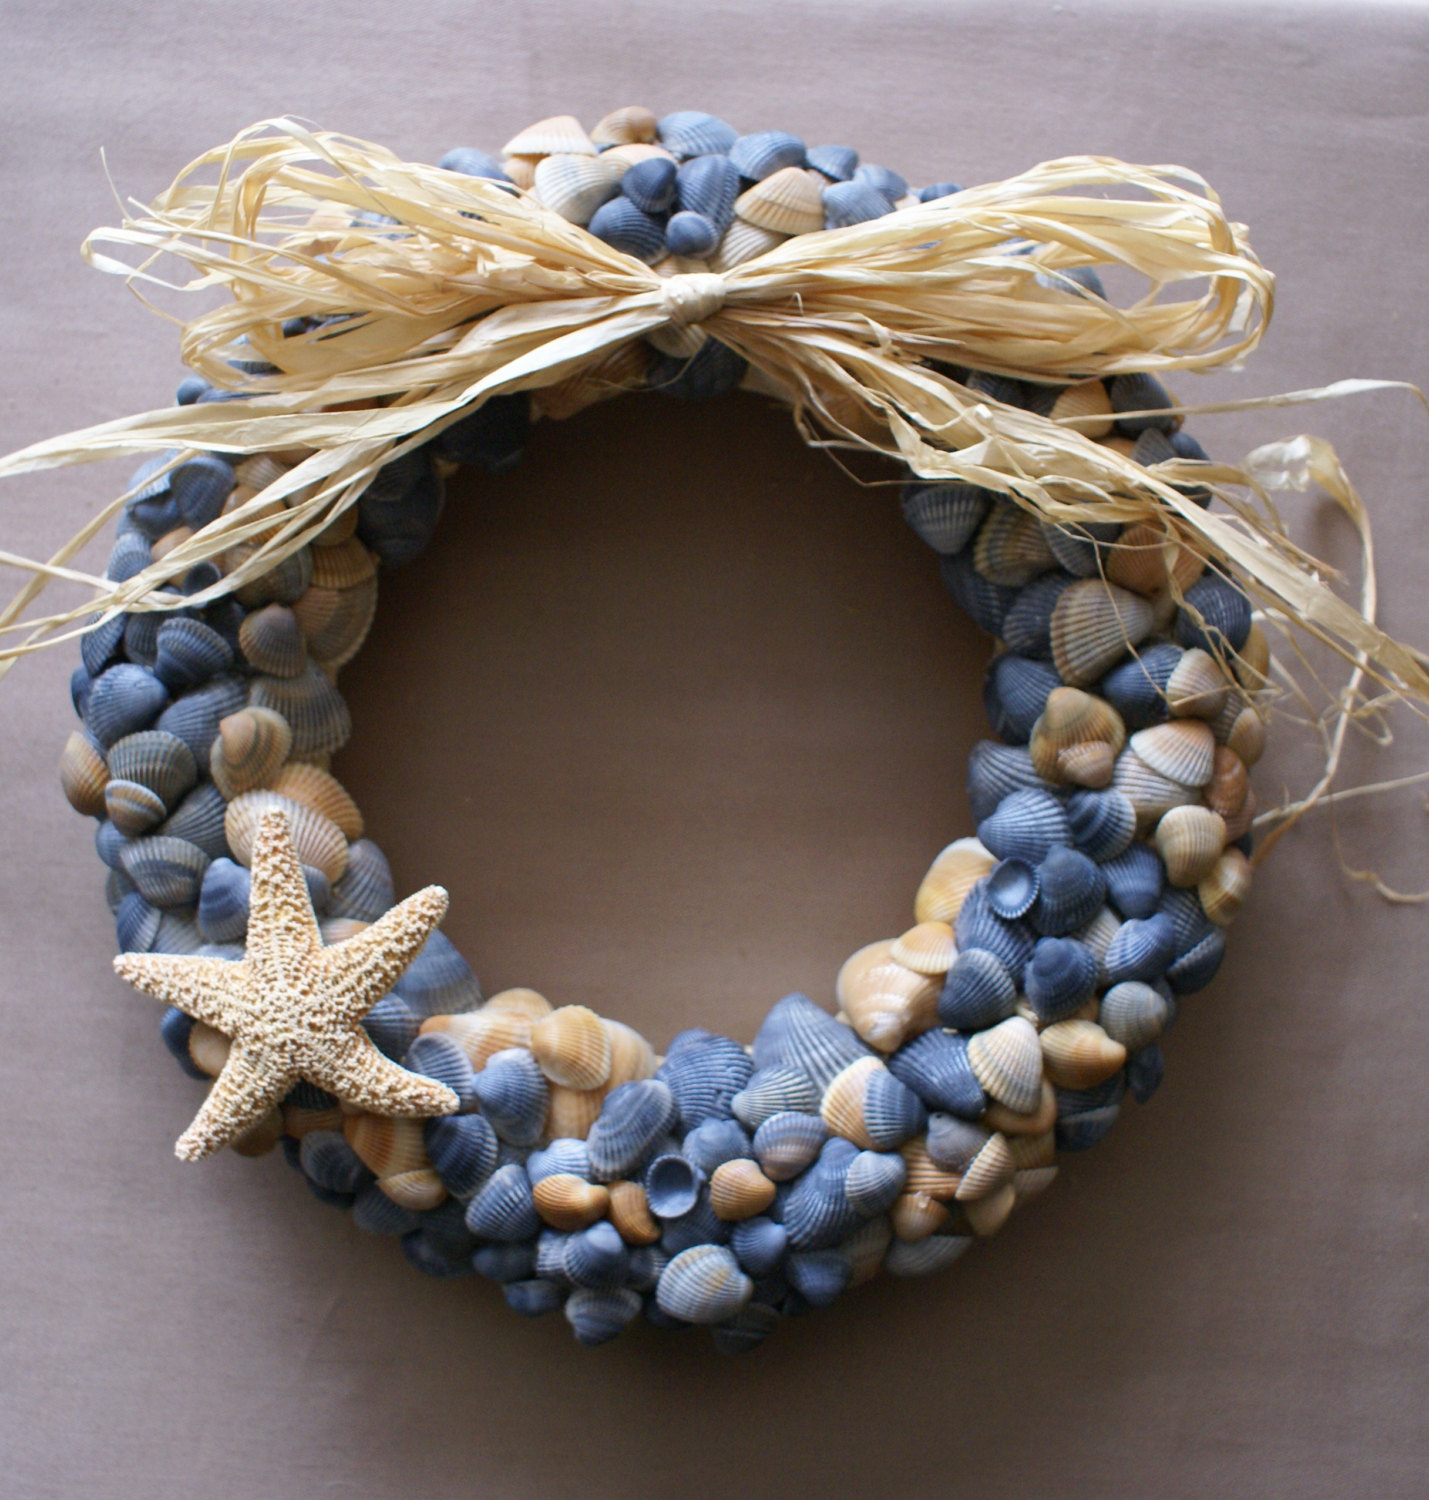 Seashell Wreath 11 In Blue Beach Wreath Coastal Decor For Wall Decor Ideas